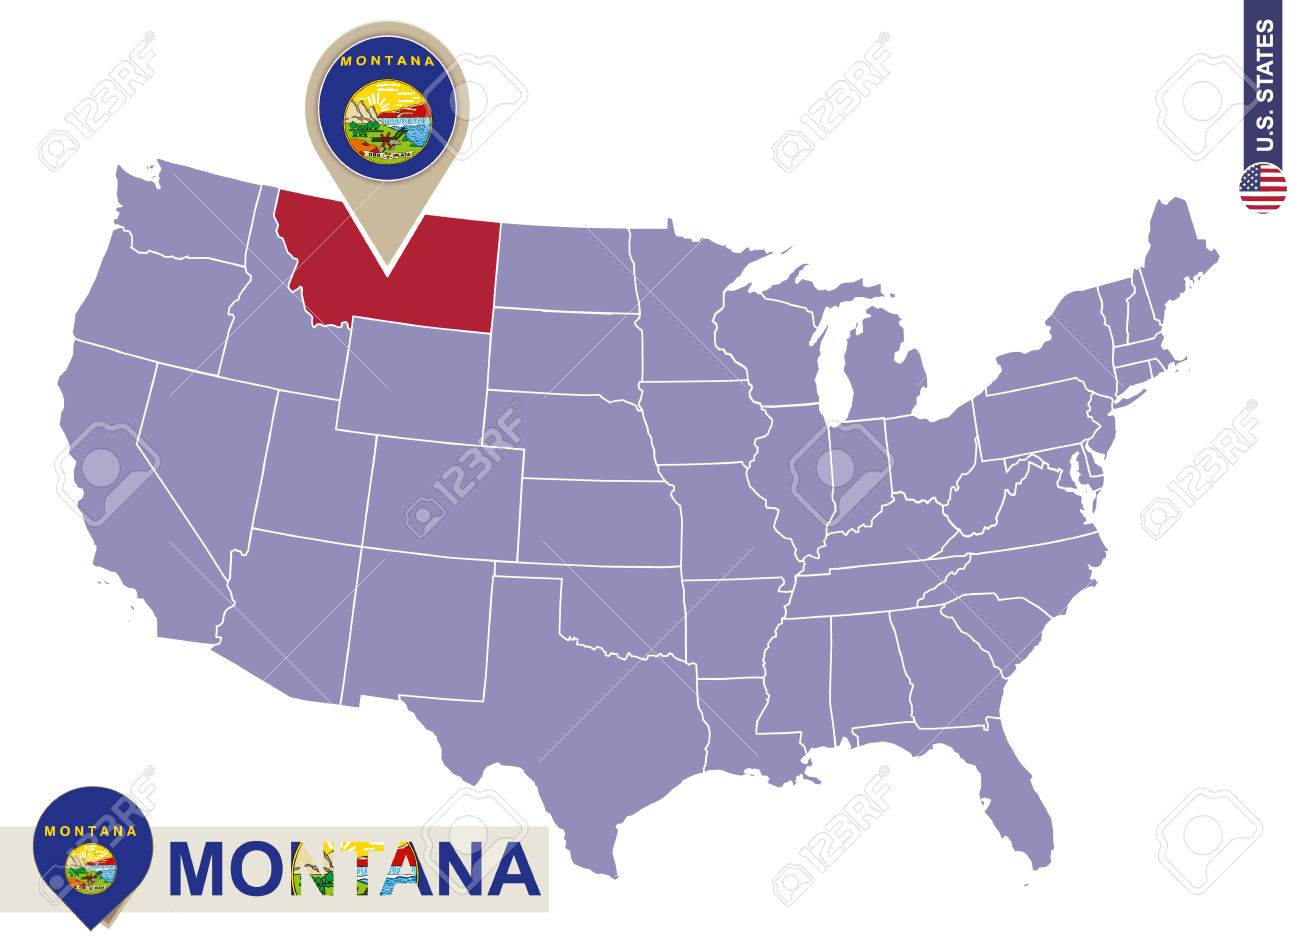 Montana State On Usa Map Montana Flag And Map Us States Royalty